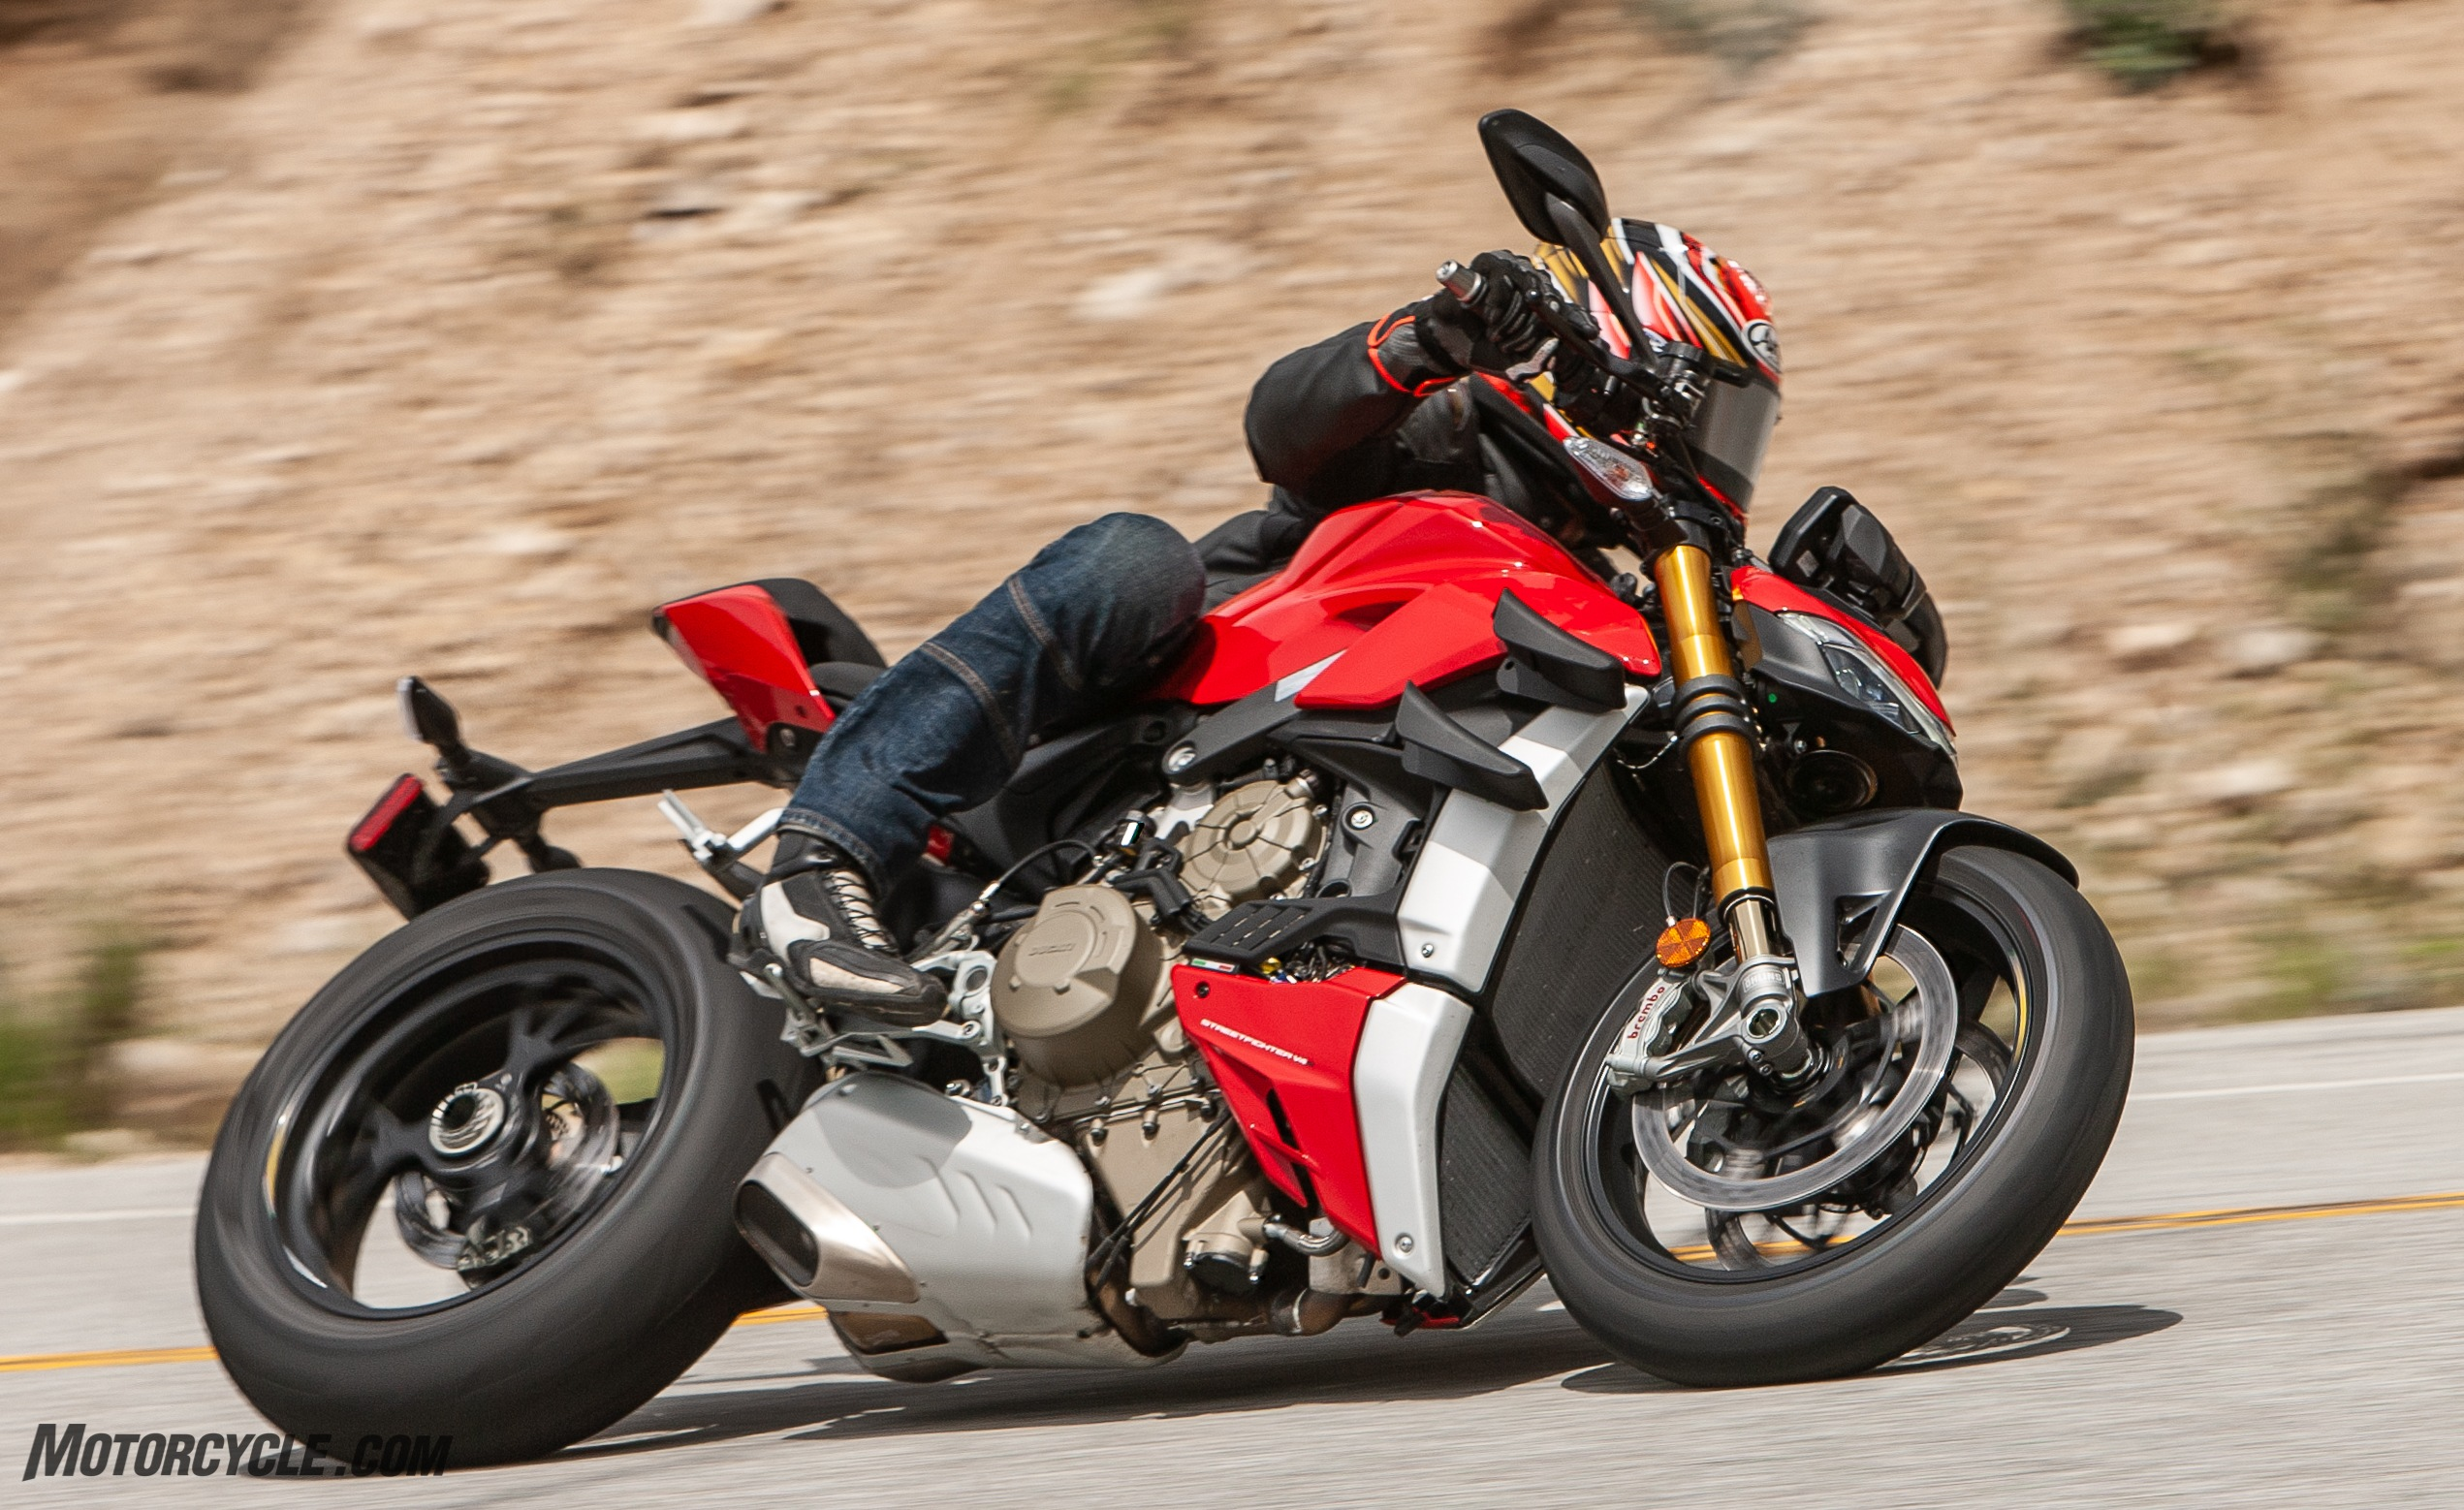 2020 Ducati Streetfighter V4 S – First Ride Review